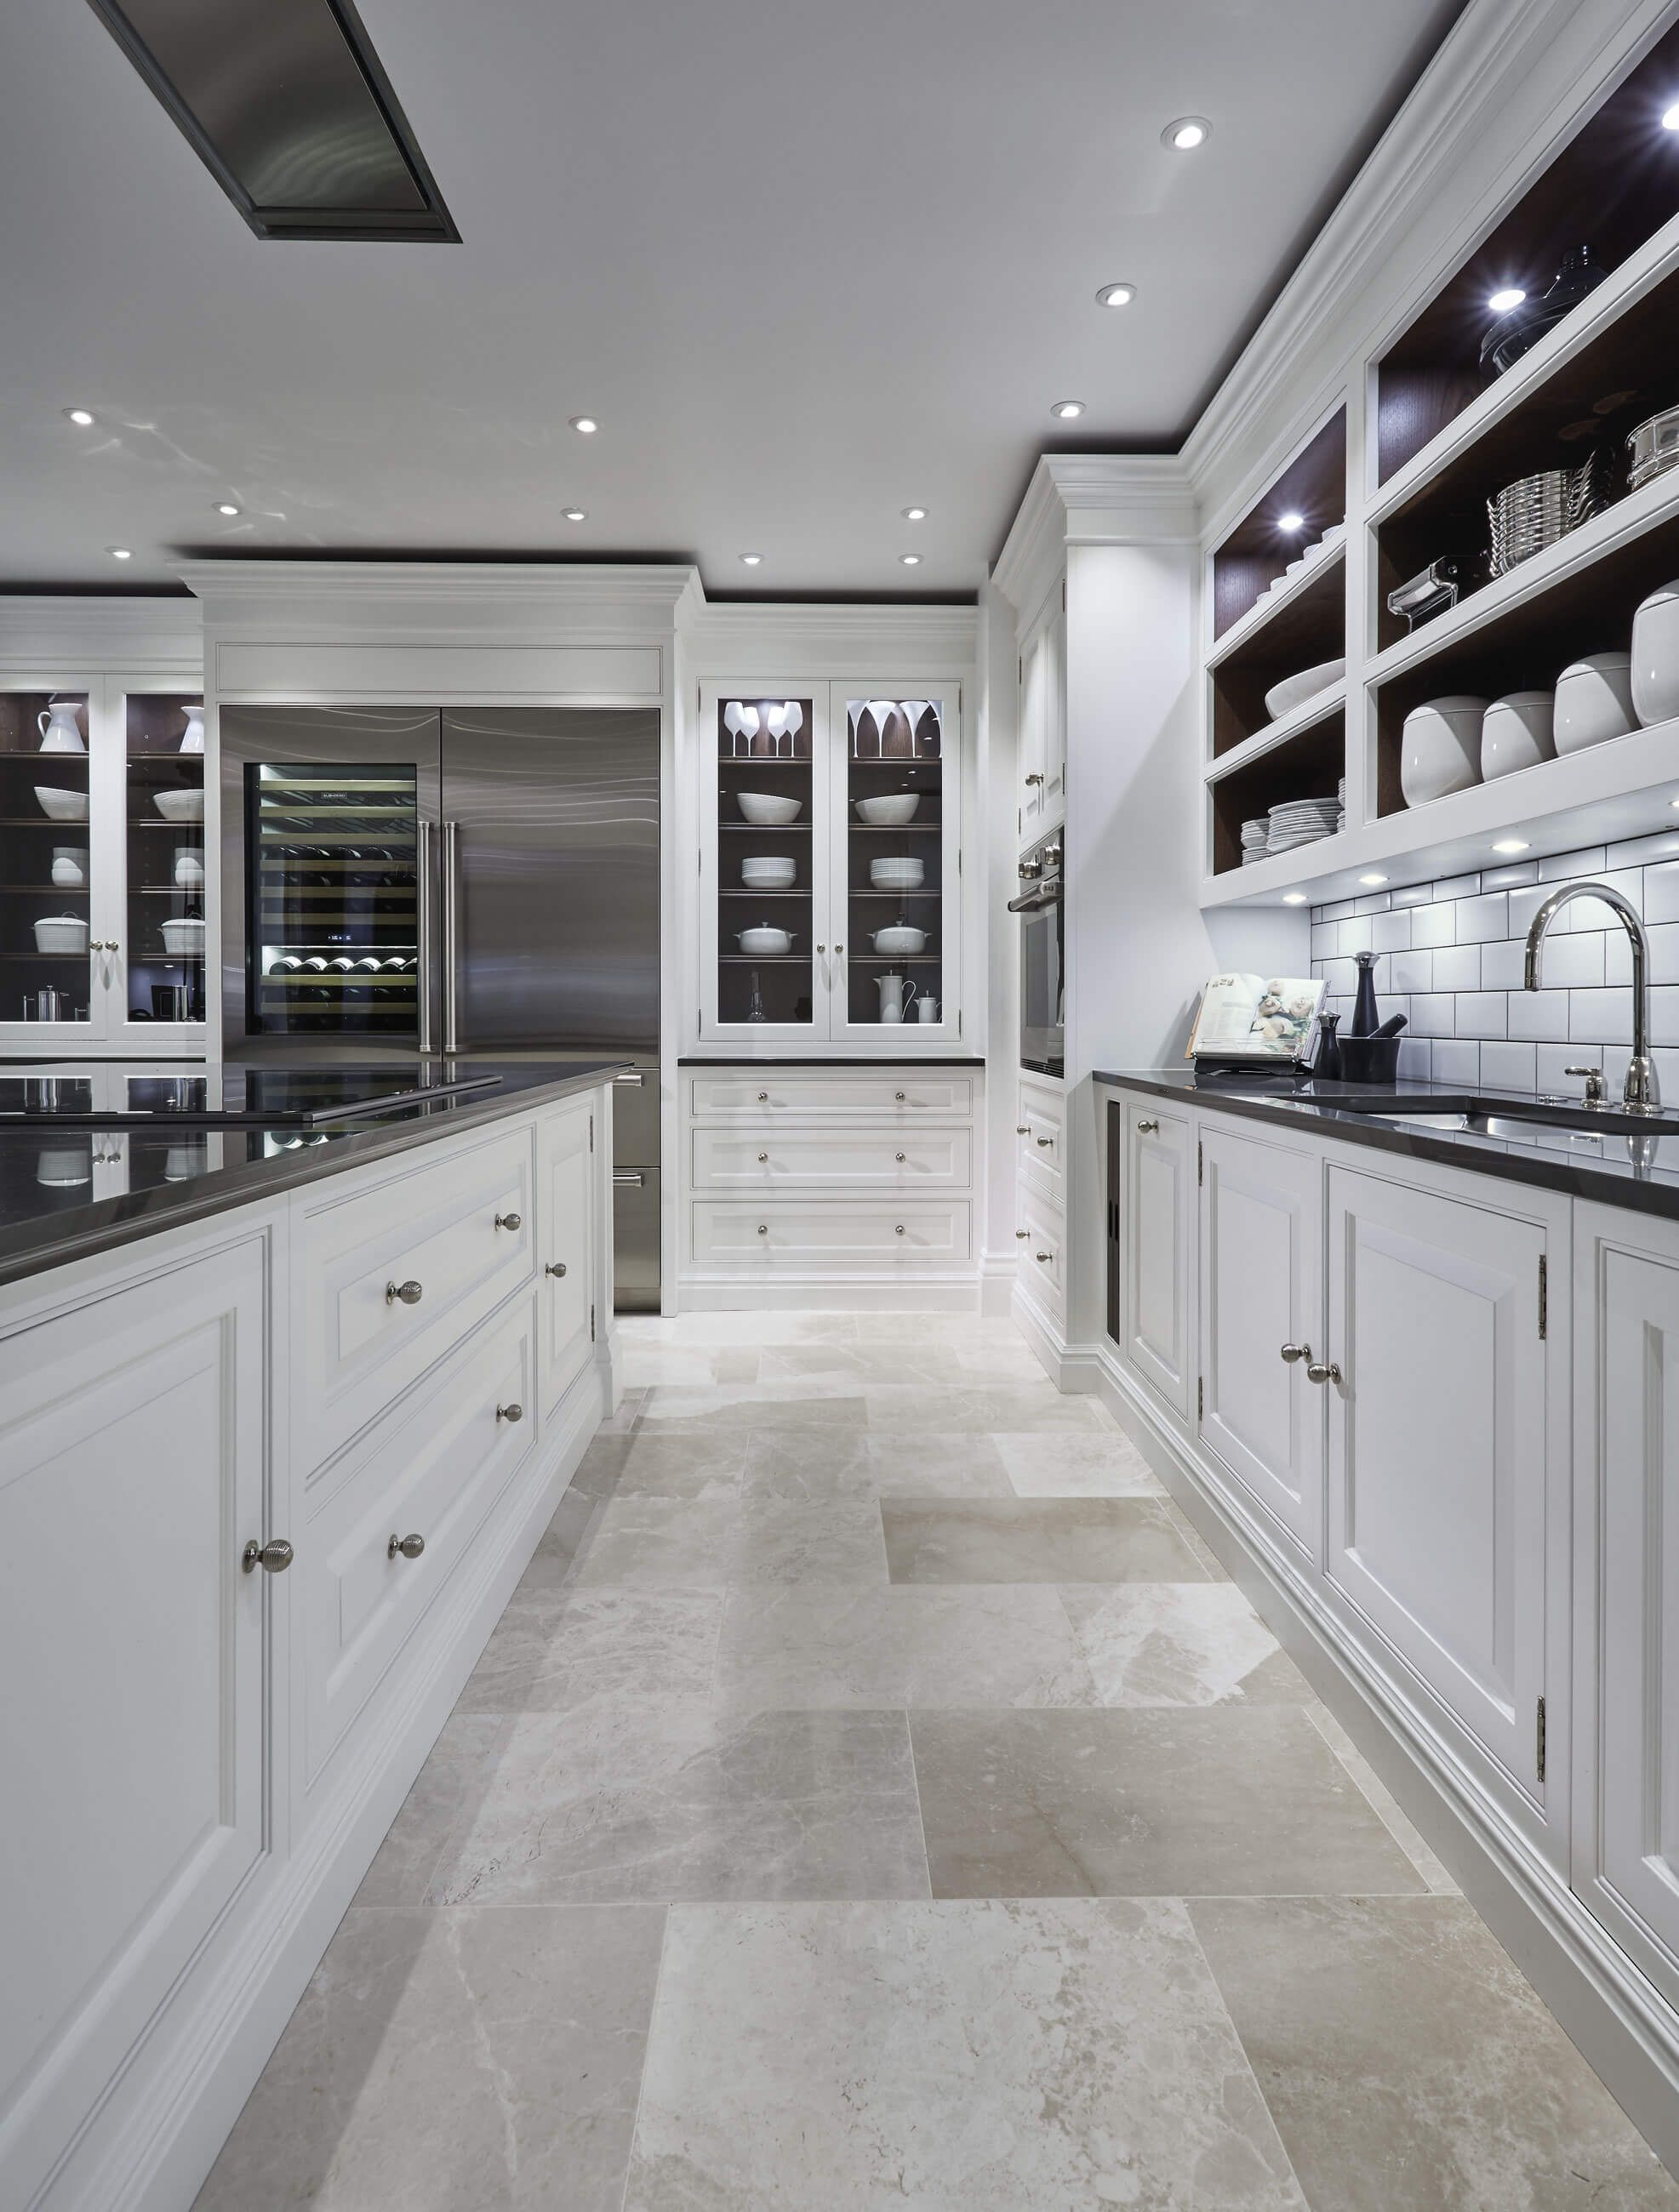 Grand Kitchen, Luxury Kitchens, Modern